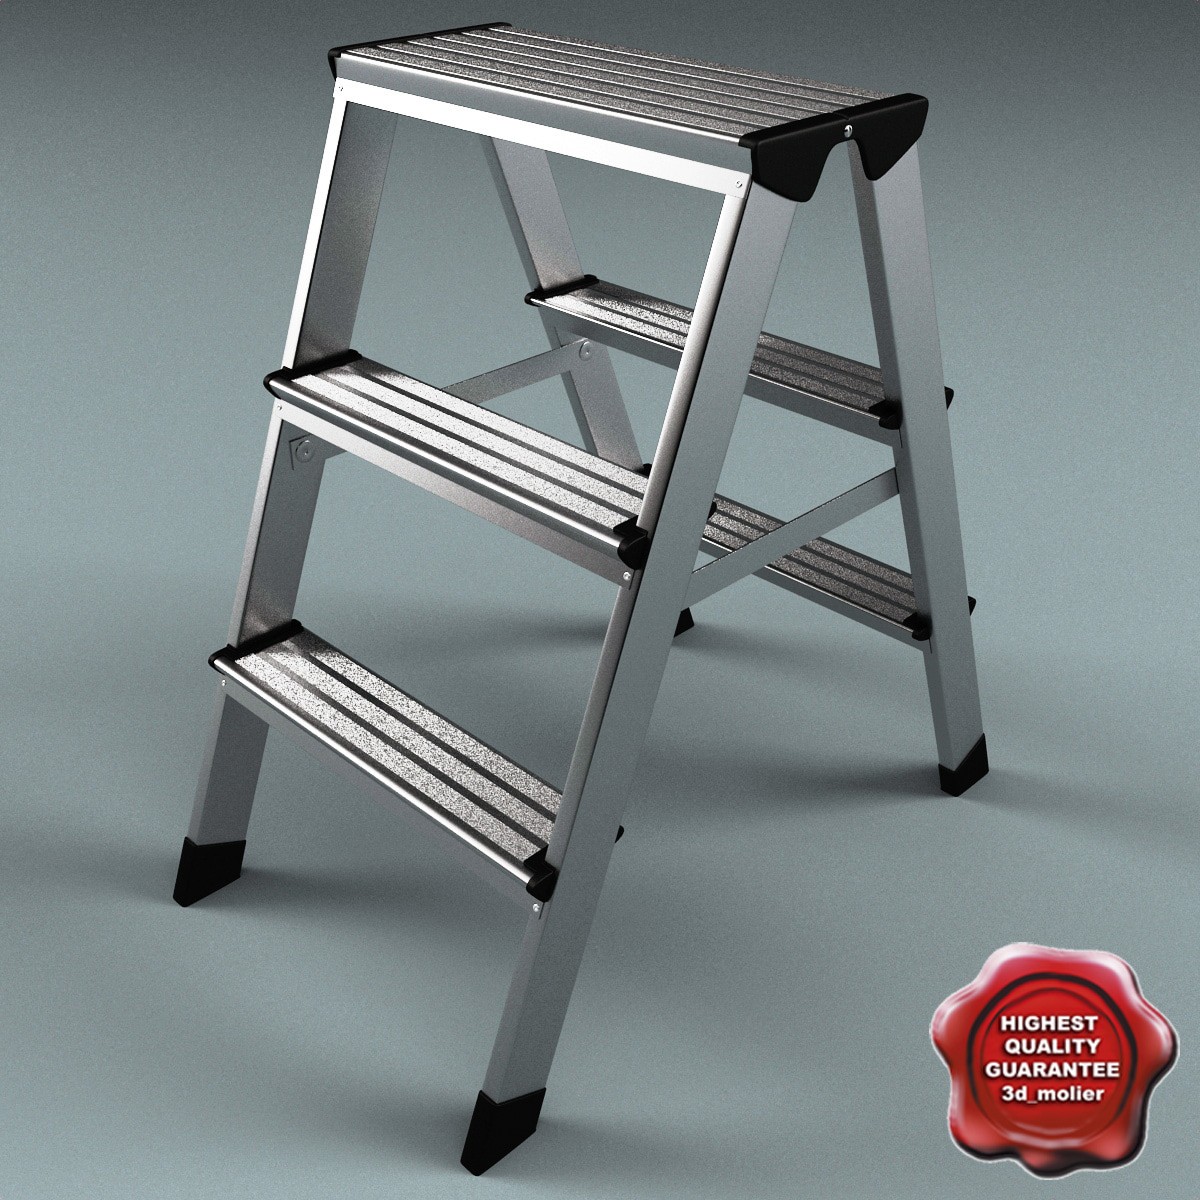 Step_Ladder_0.jpg